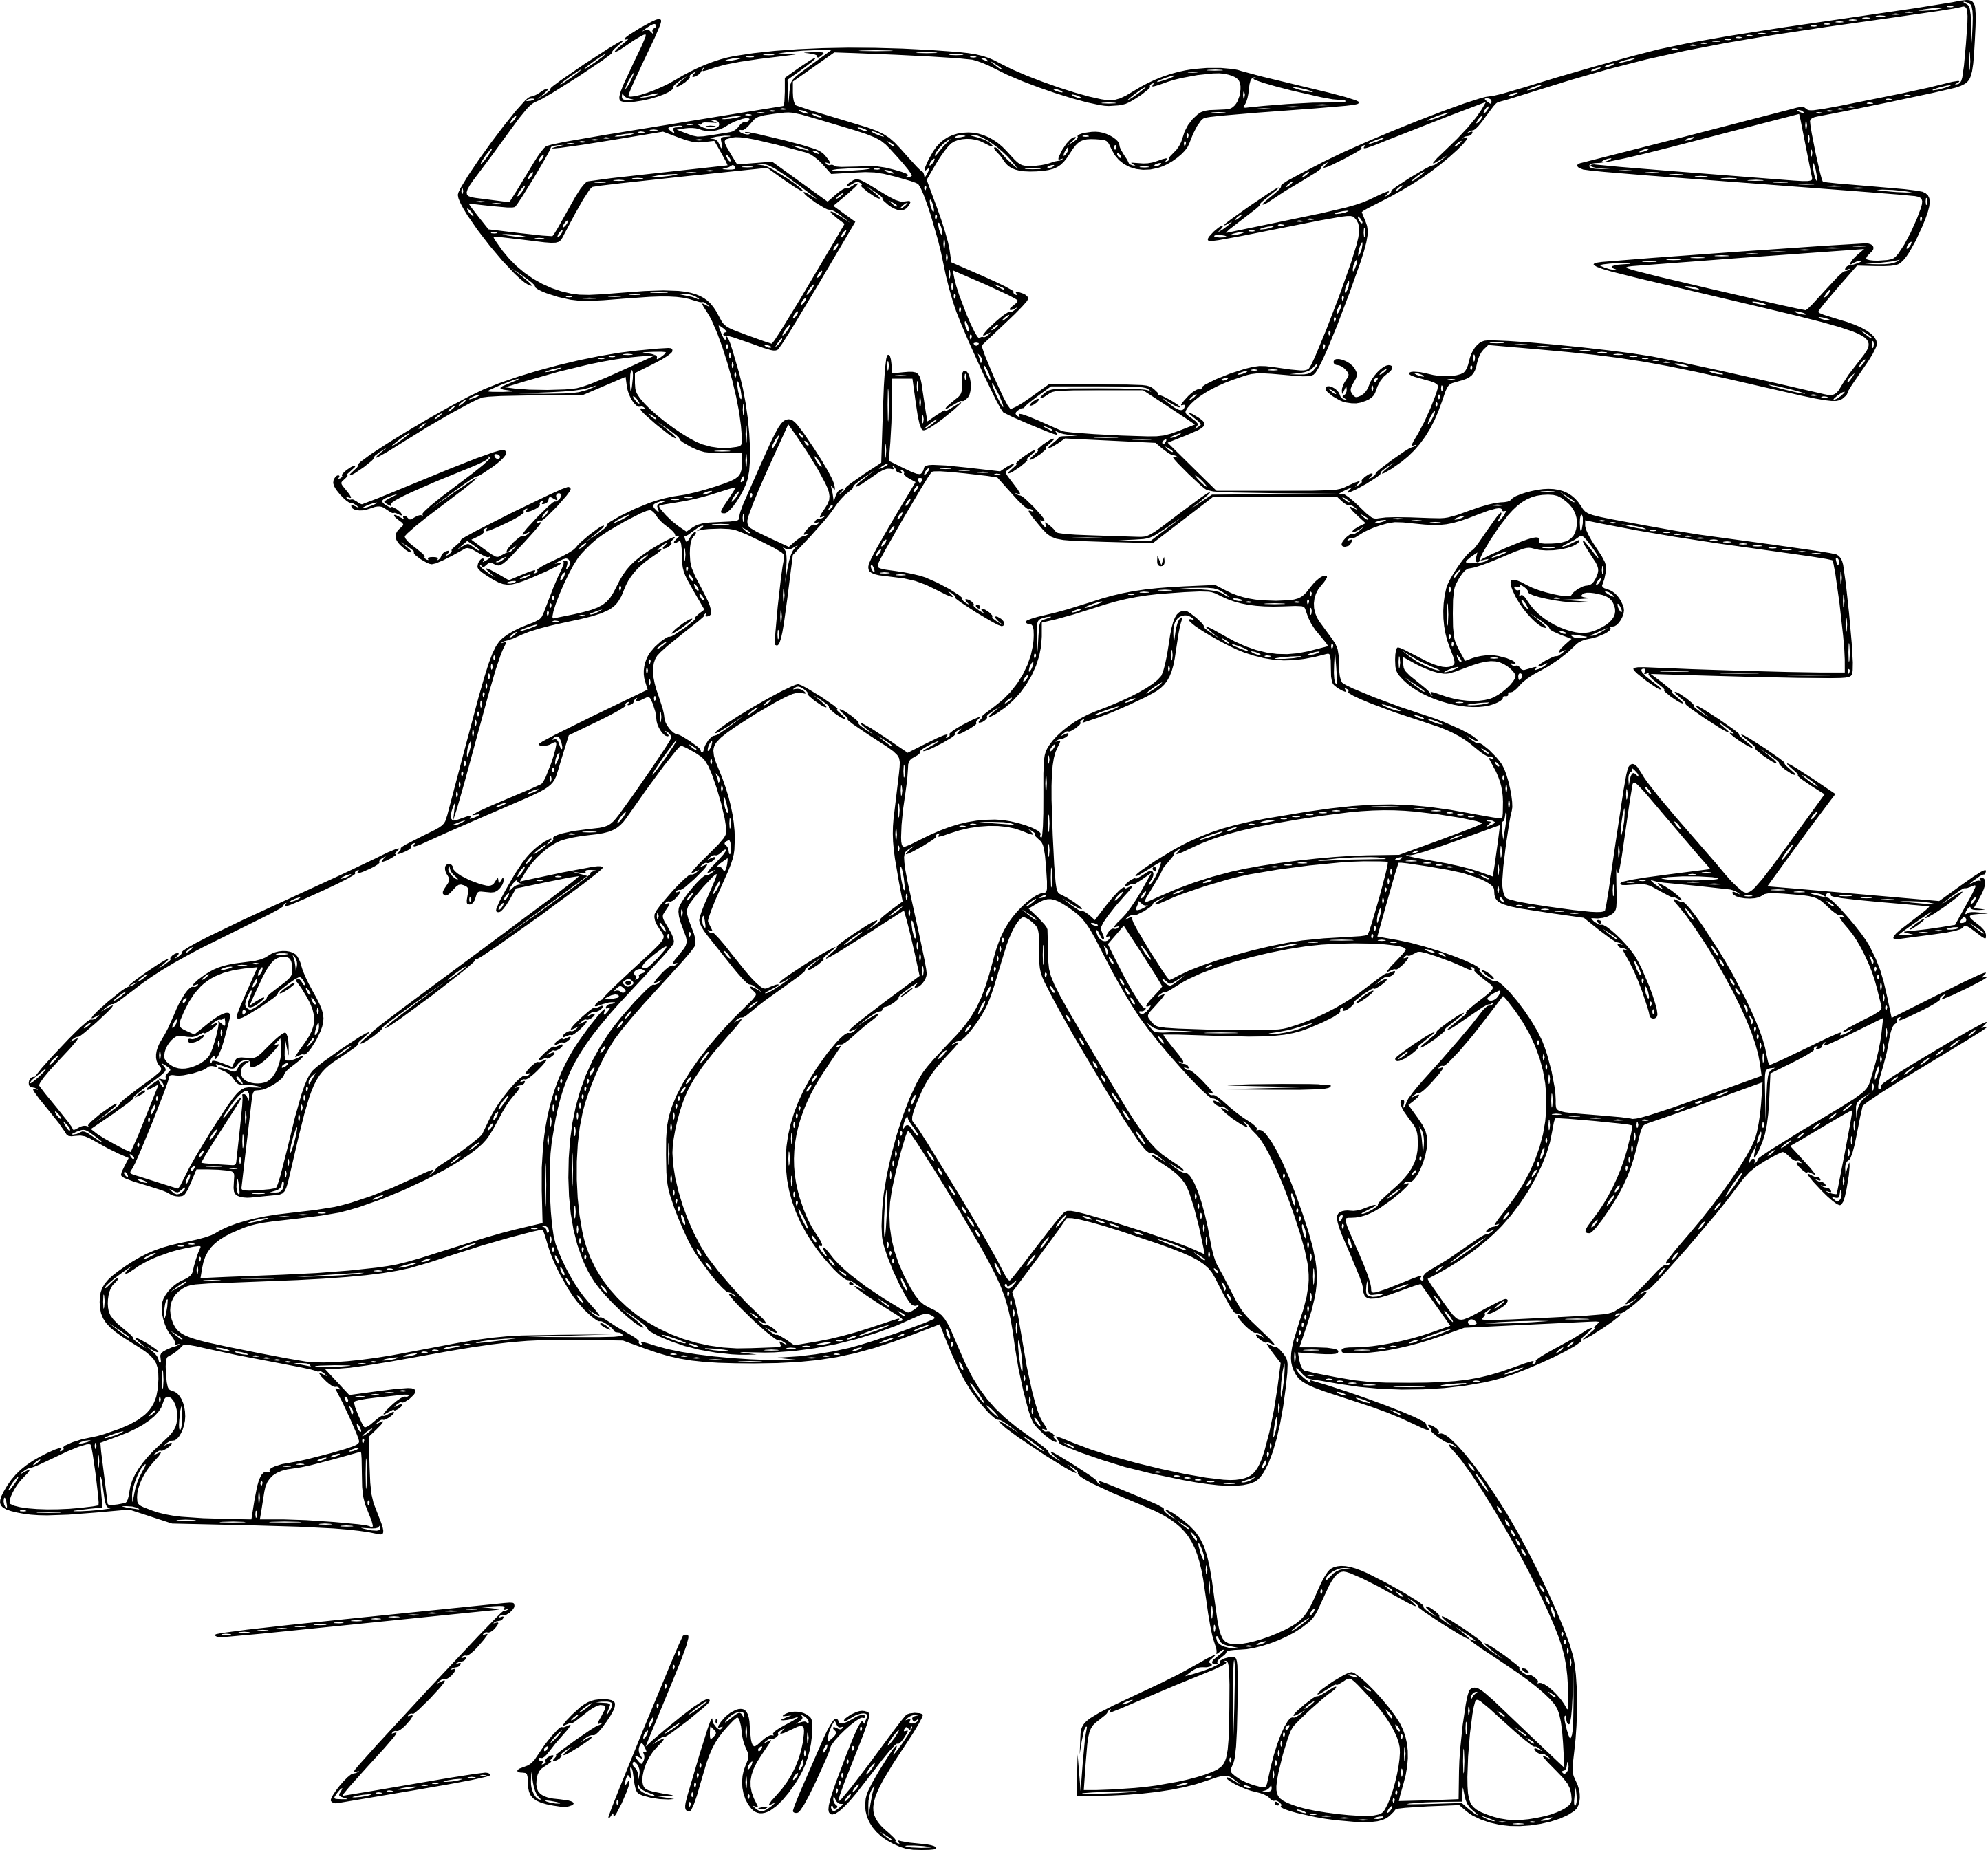 Dessin colorier pokemon ex mega evolution - Coloriage pokemon ex ...